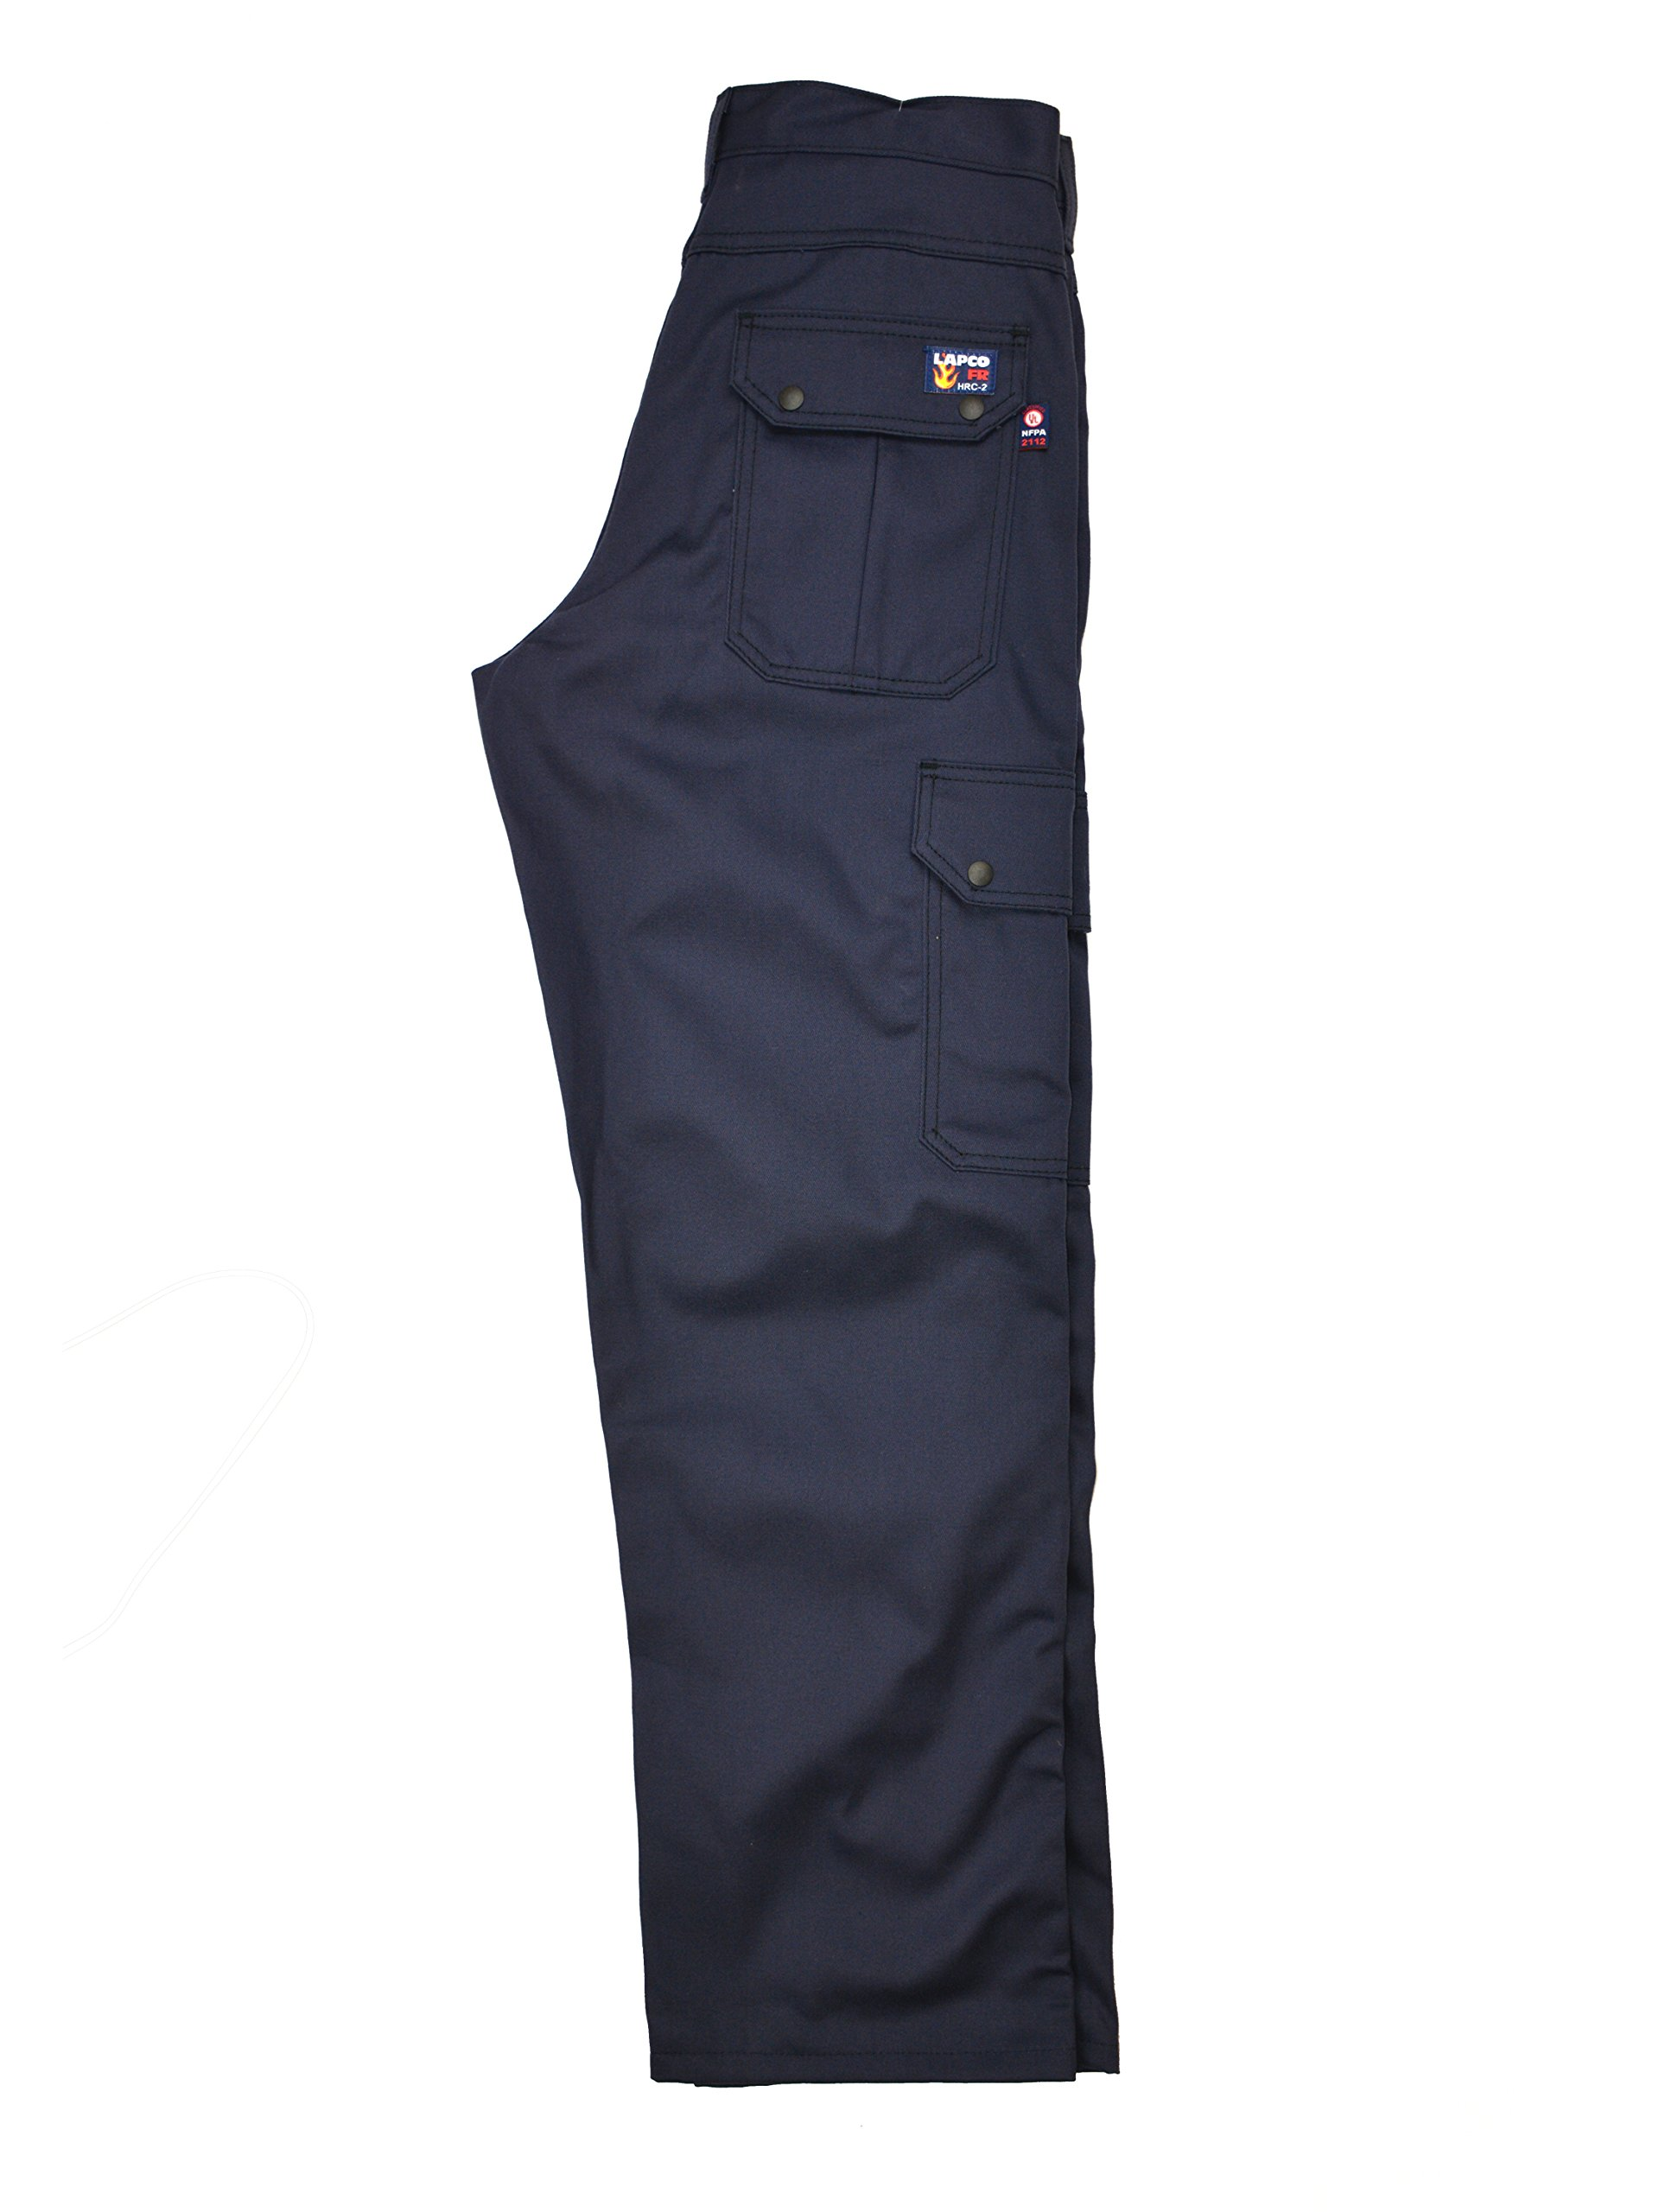 Lapco FR P-INCNYT9 34X30 Cargo Pant, 100% Cotton, 34'' x 30'', Navy by Lapco FR (Image #1)